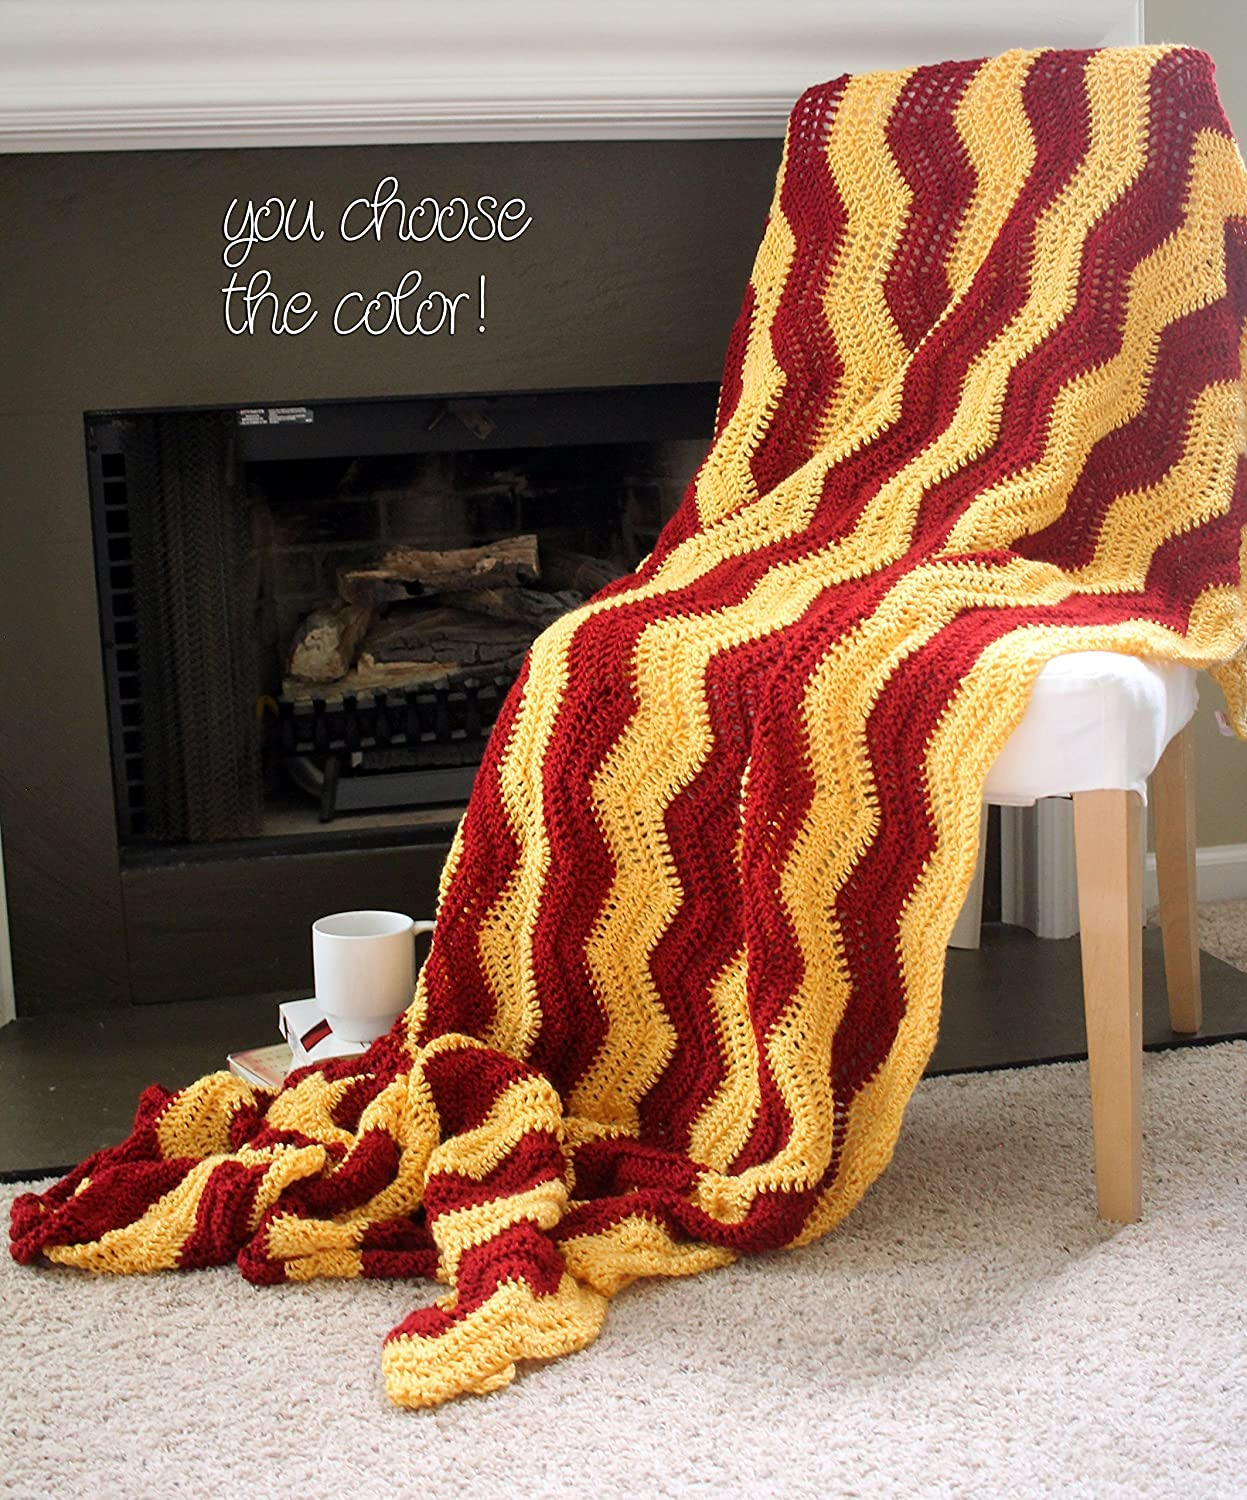 Image of Chevron Afghan Throw Blanket Crochet - Large Vertical Sunshine Yellow and Dark Red Striped Ripple Zig Zag - Made To Order Home and Kitchen